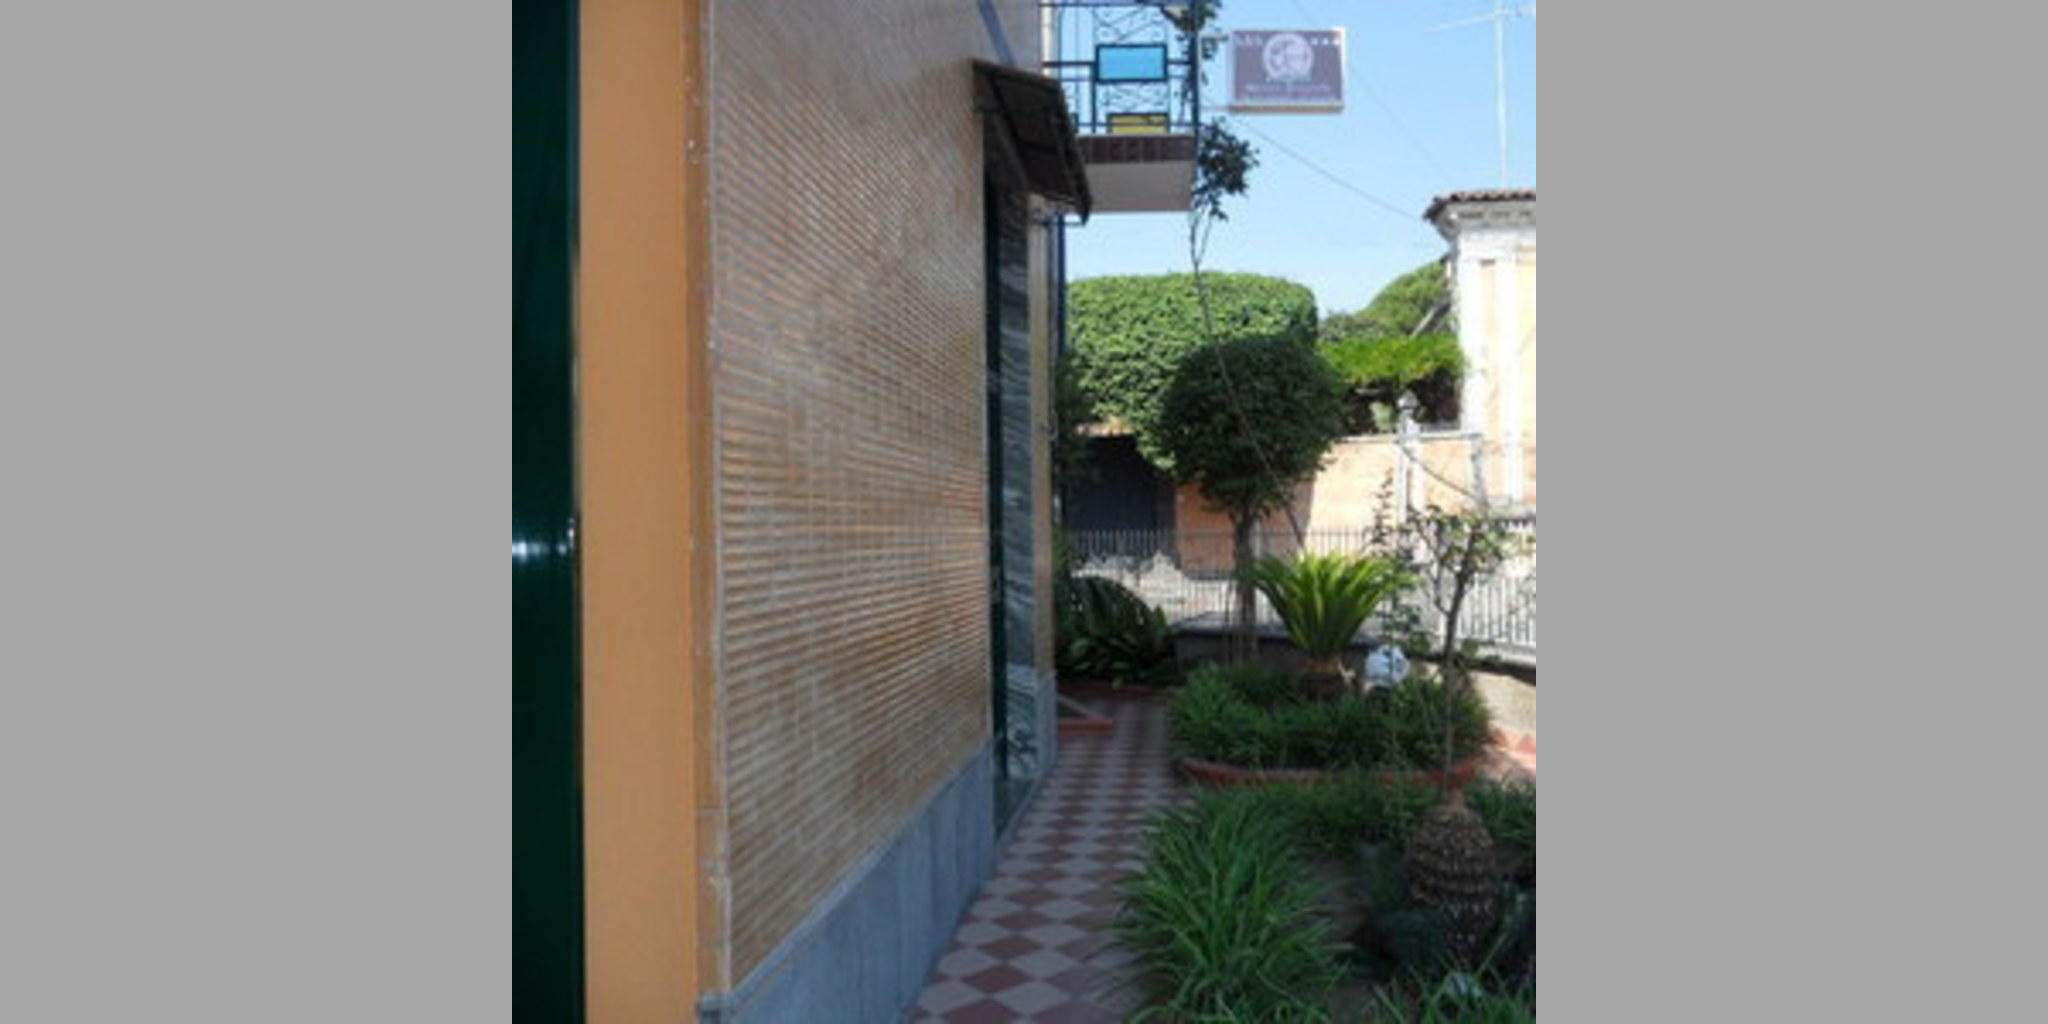 Bed & Breakfast Viagrande - B&B A Viagrande